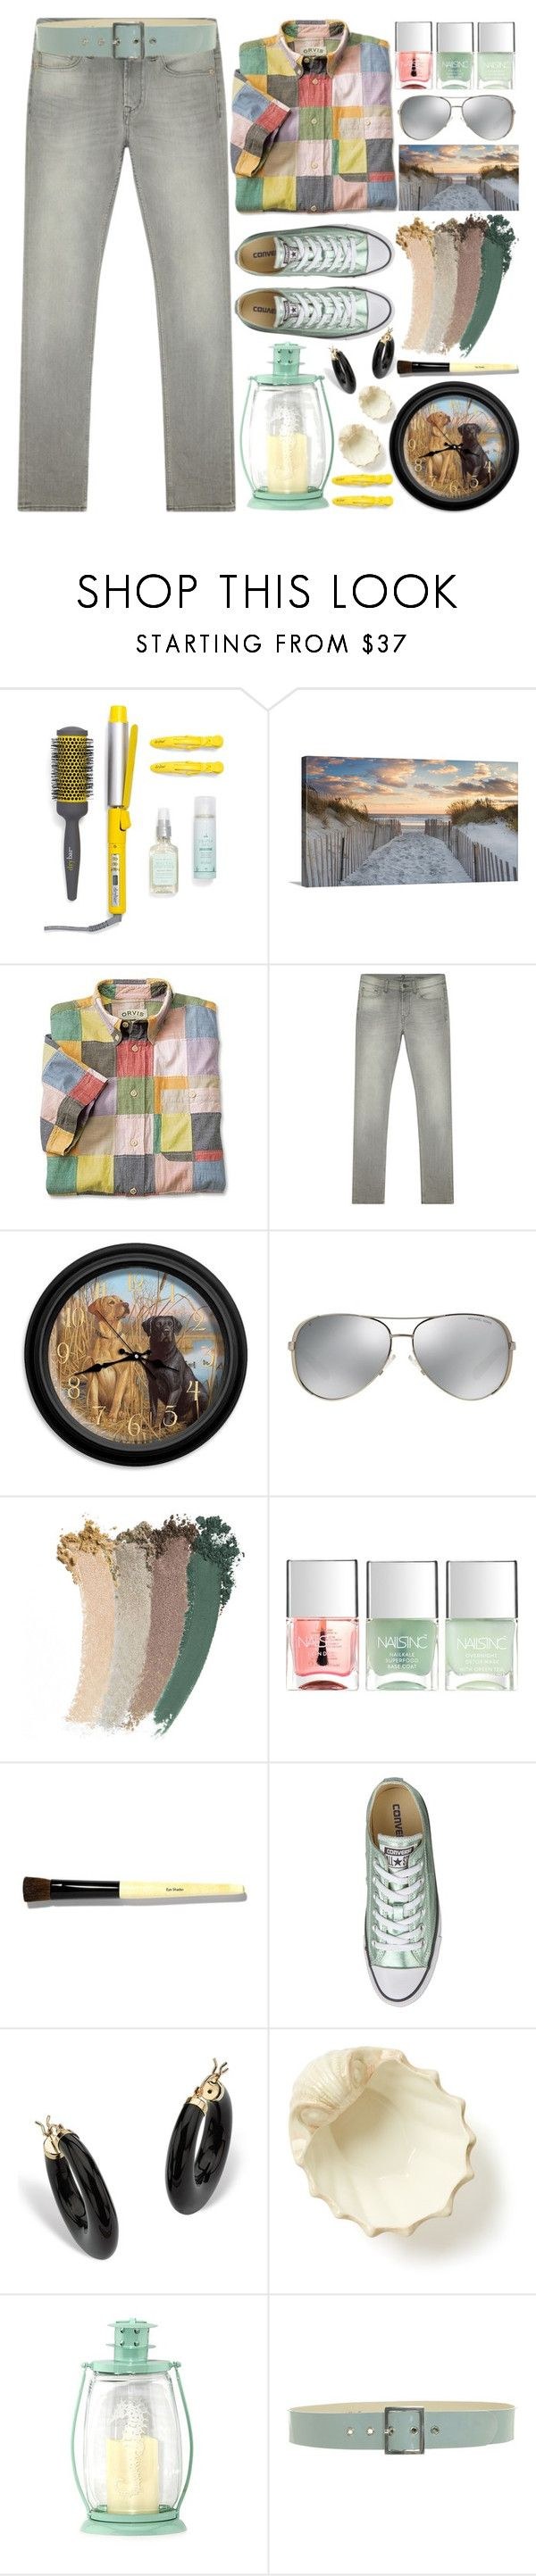 Glamorous bamboo fencing mode miami tropical landscape image ideas -  At The North Sea By Grozdana V Liked On Polyvore Featuring Drybar